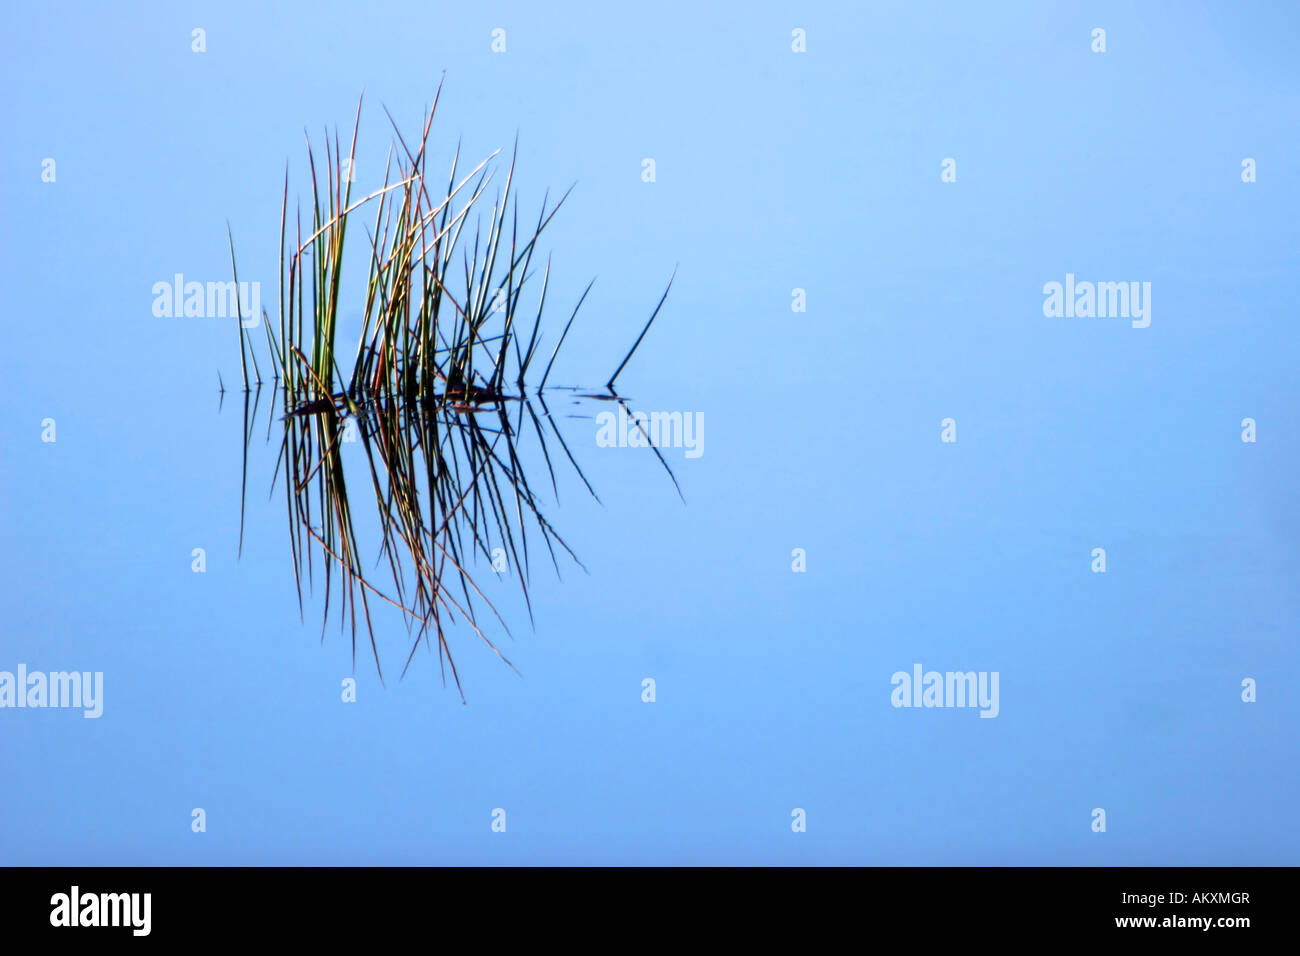 Bulrushes (Juncaceae) being reflected in the lake - Stock Image